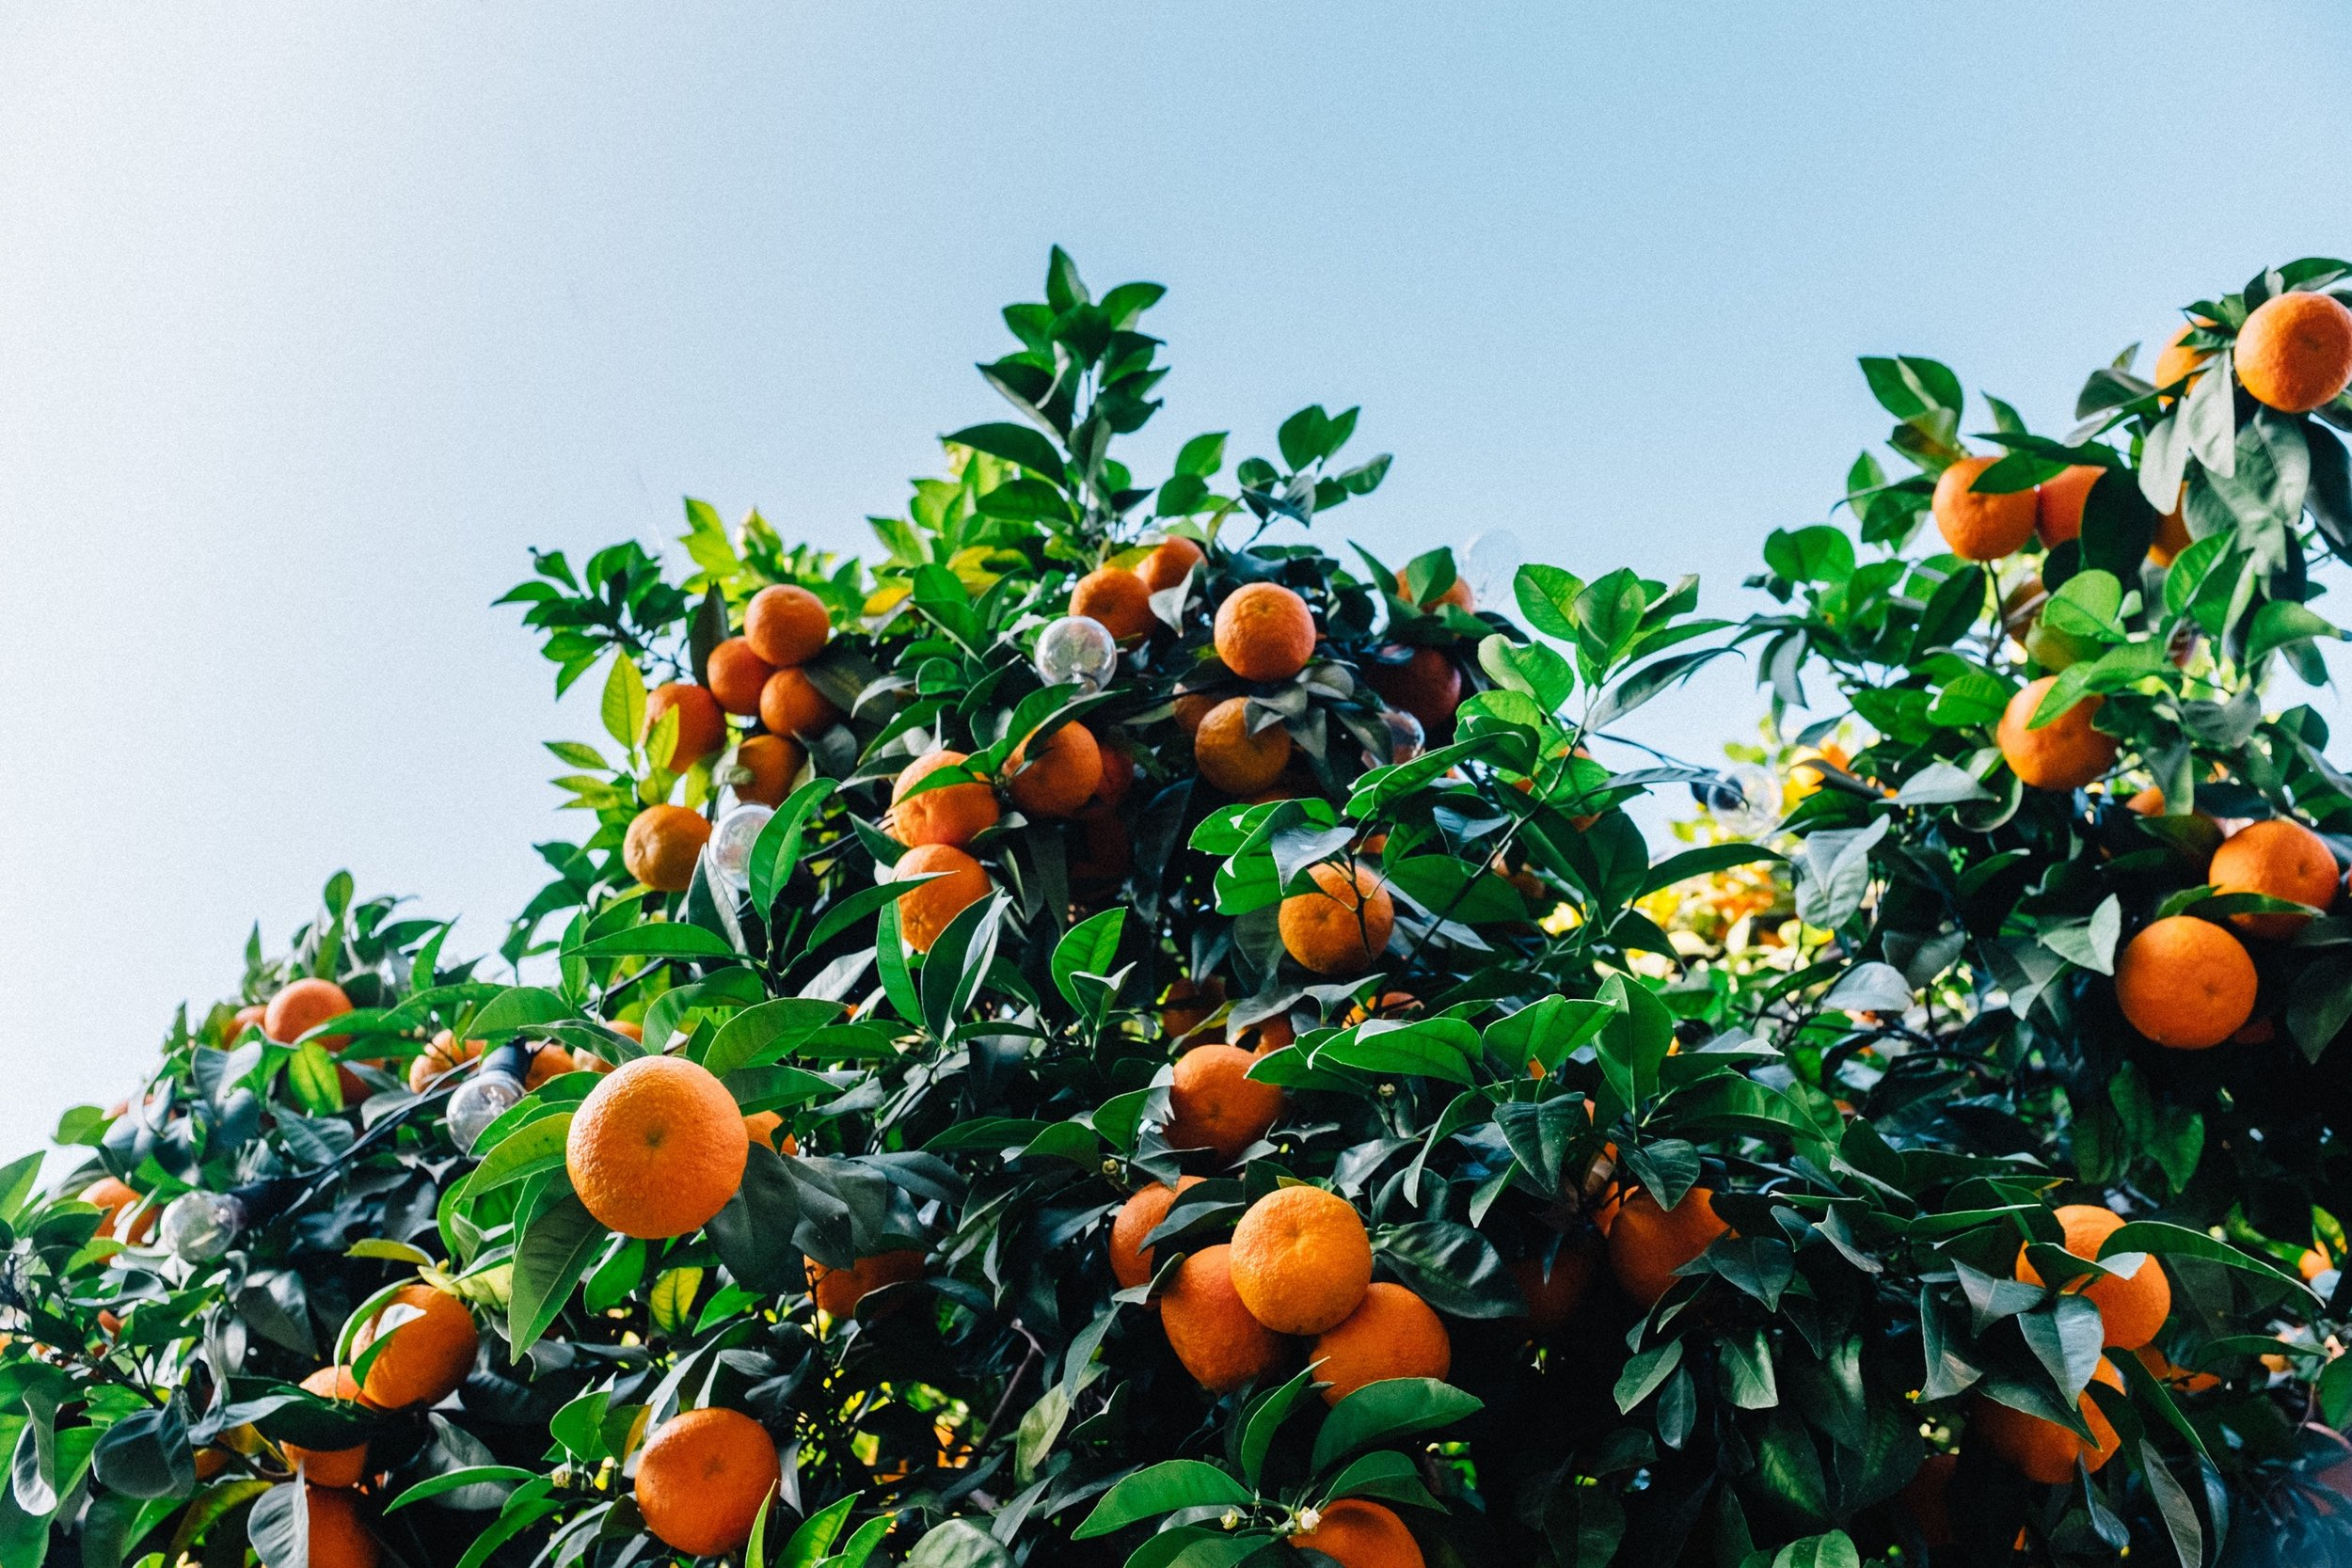 Plant some public fruit trees in your neighbourhood -